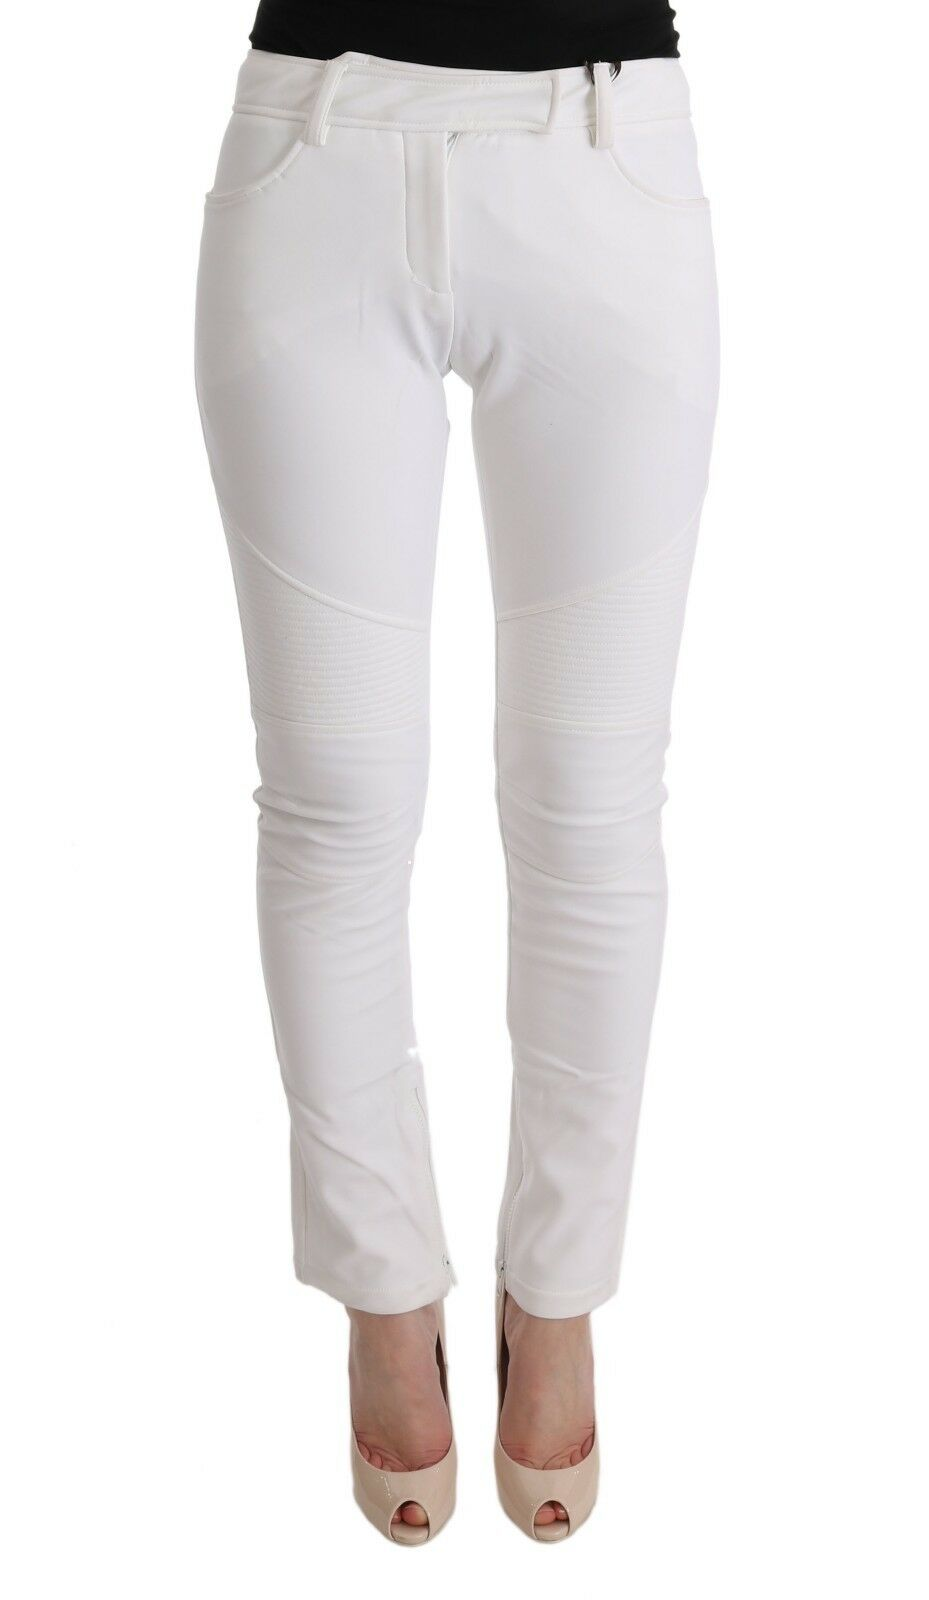 NEW  ERMANNO SCERVINO Pants White Cotton Slim Fit Casual s. IT40   US6   S